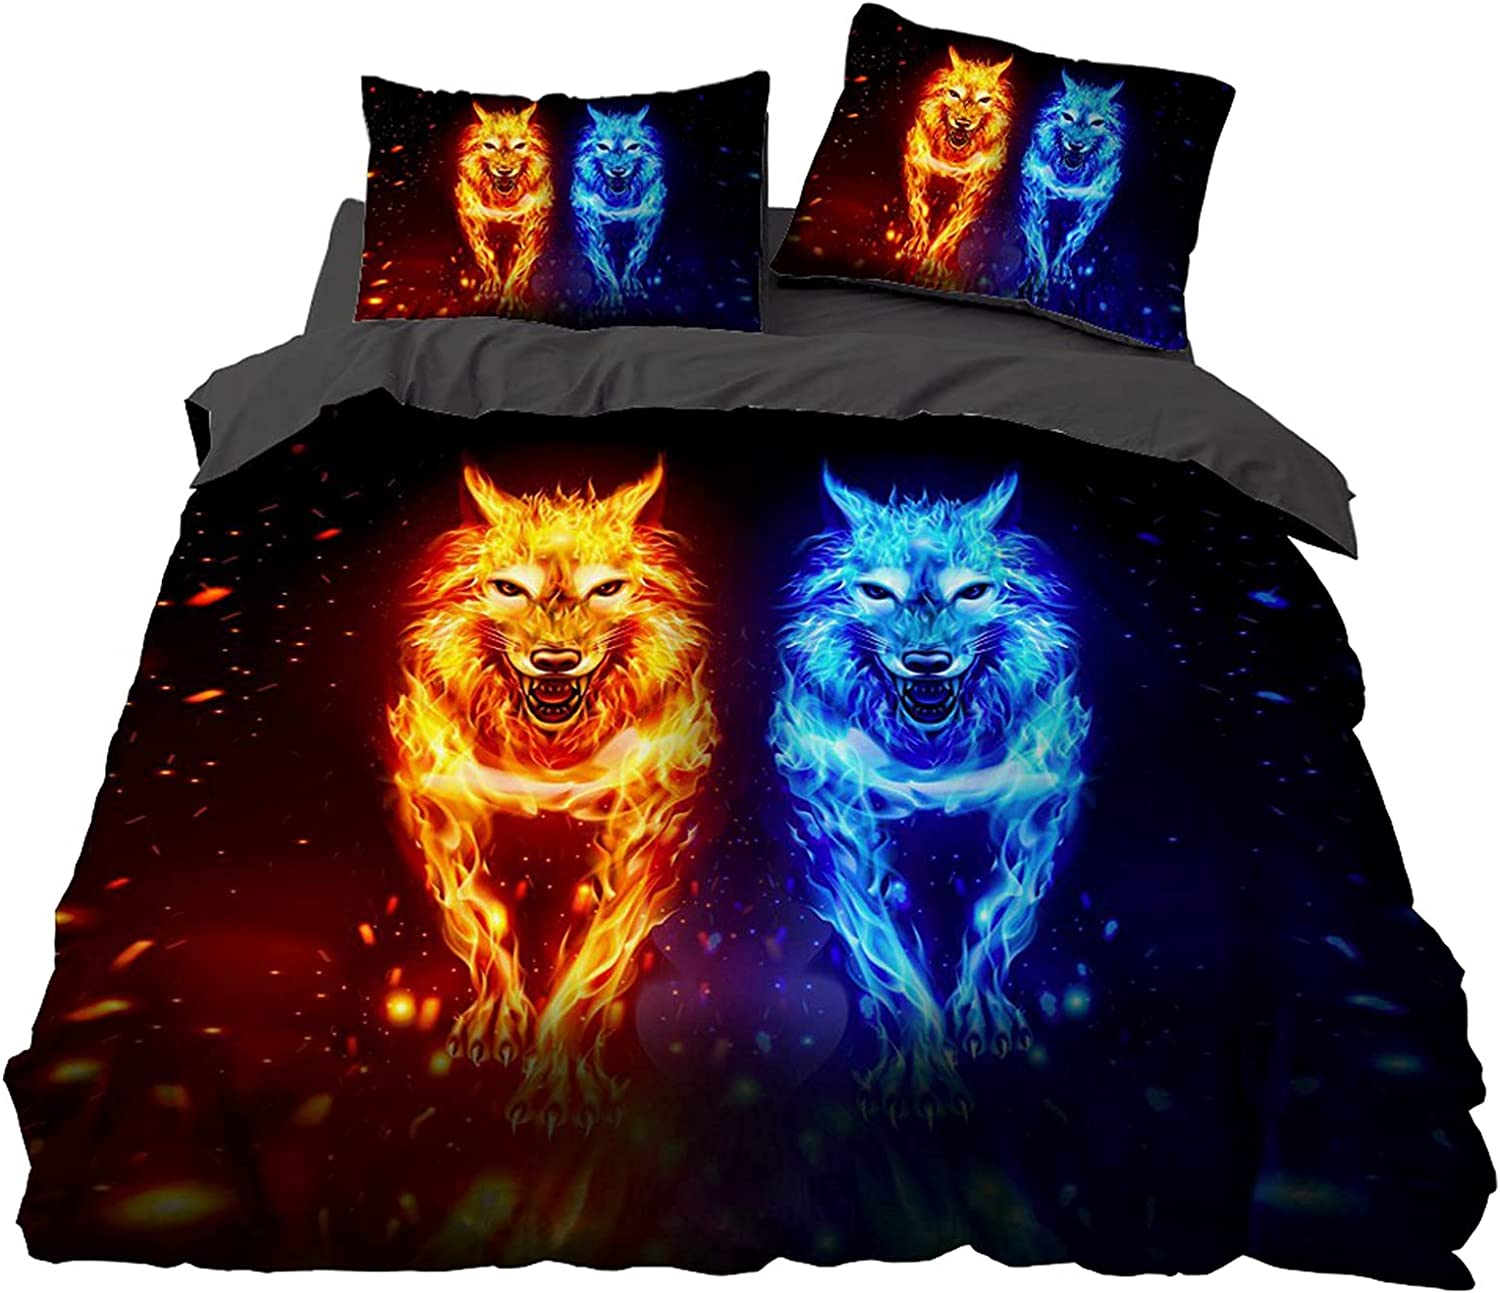 Fire and Ice Wolf Duvet Cover S Animal Many Finally popular brand popular brands Pattern Set Wild Bedding